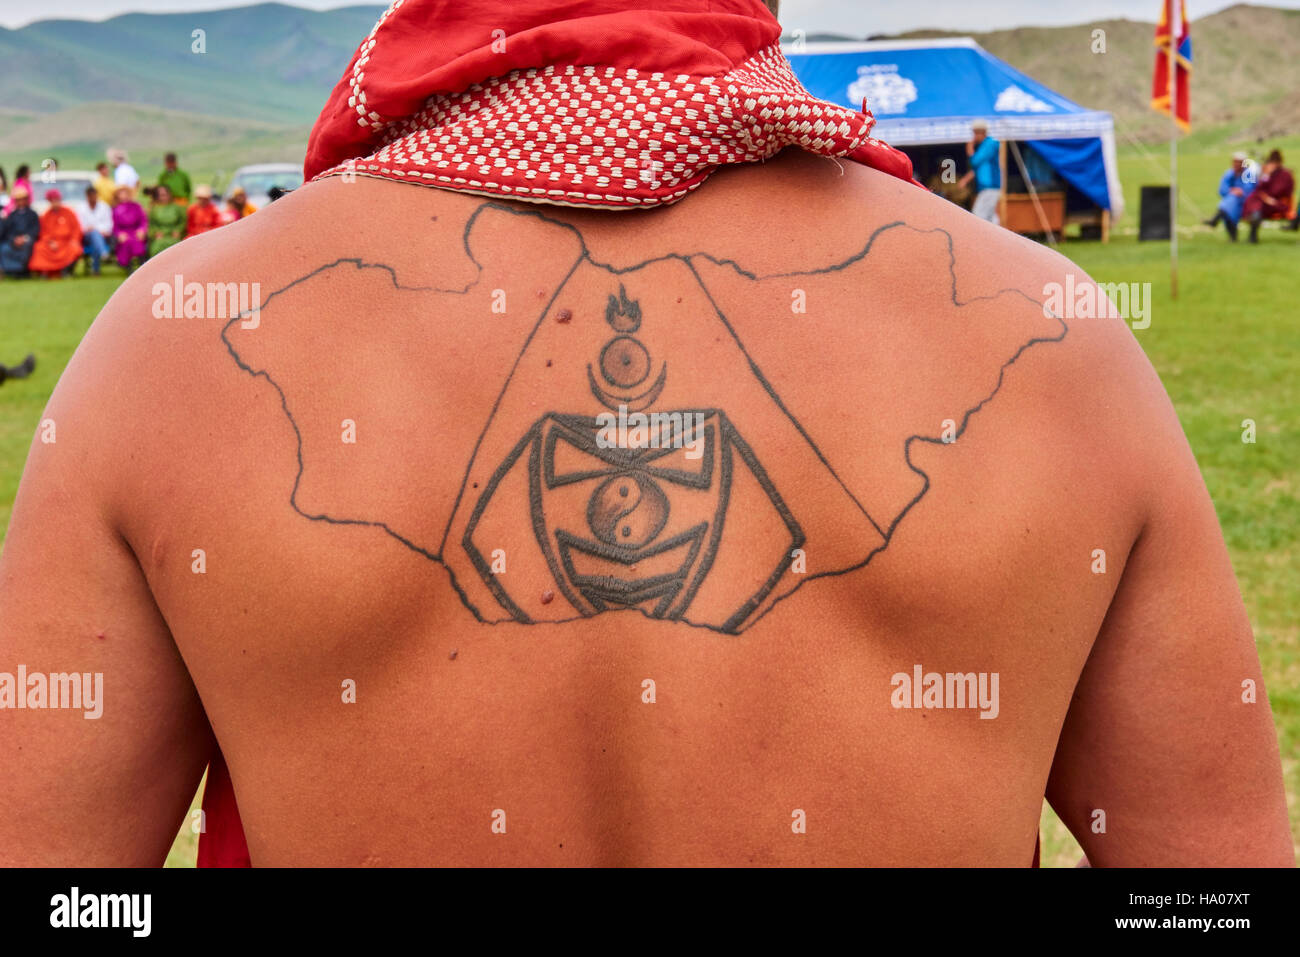 Mongolia, Bayankhongor province, Naadam, traditional festival, wrestler wearing a tattoo of the map of Mongolia - Stock Image